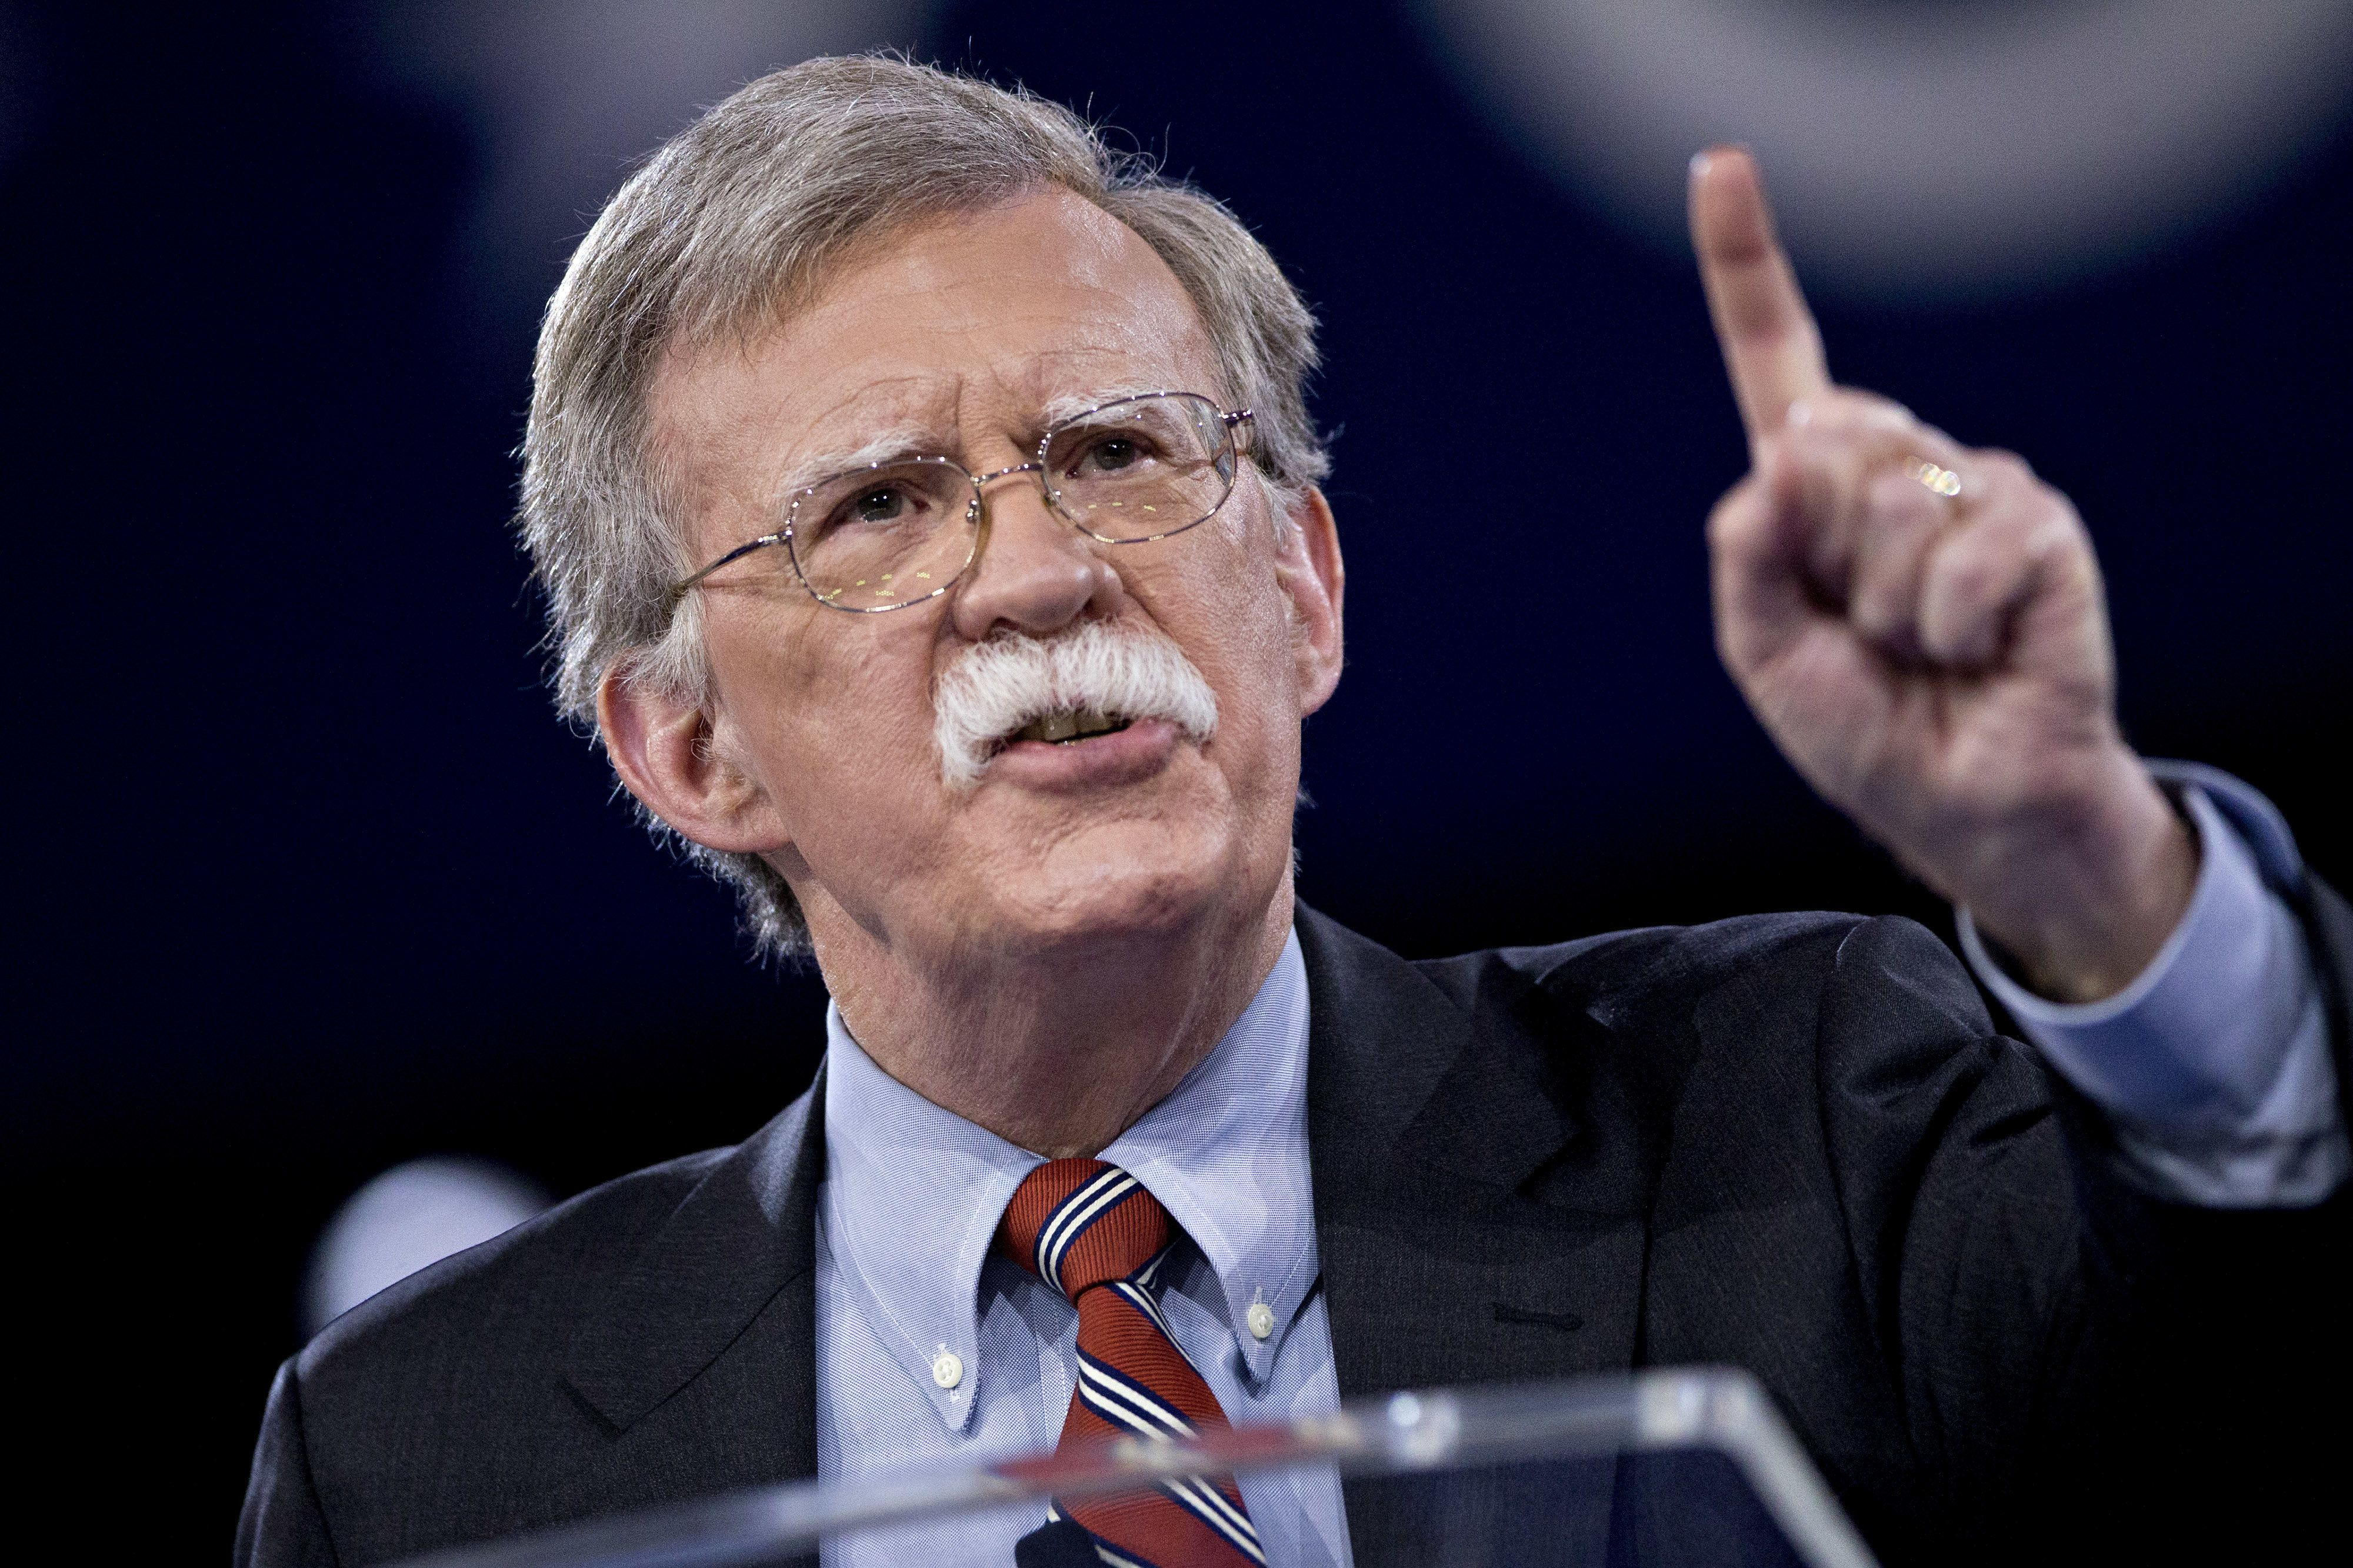 John Bolton, the former U.S. ambassador to the United Nations, has again called for regime change in Iran.